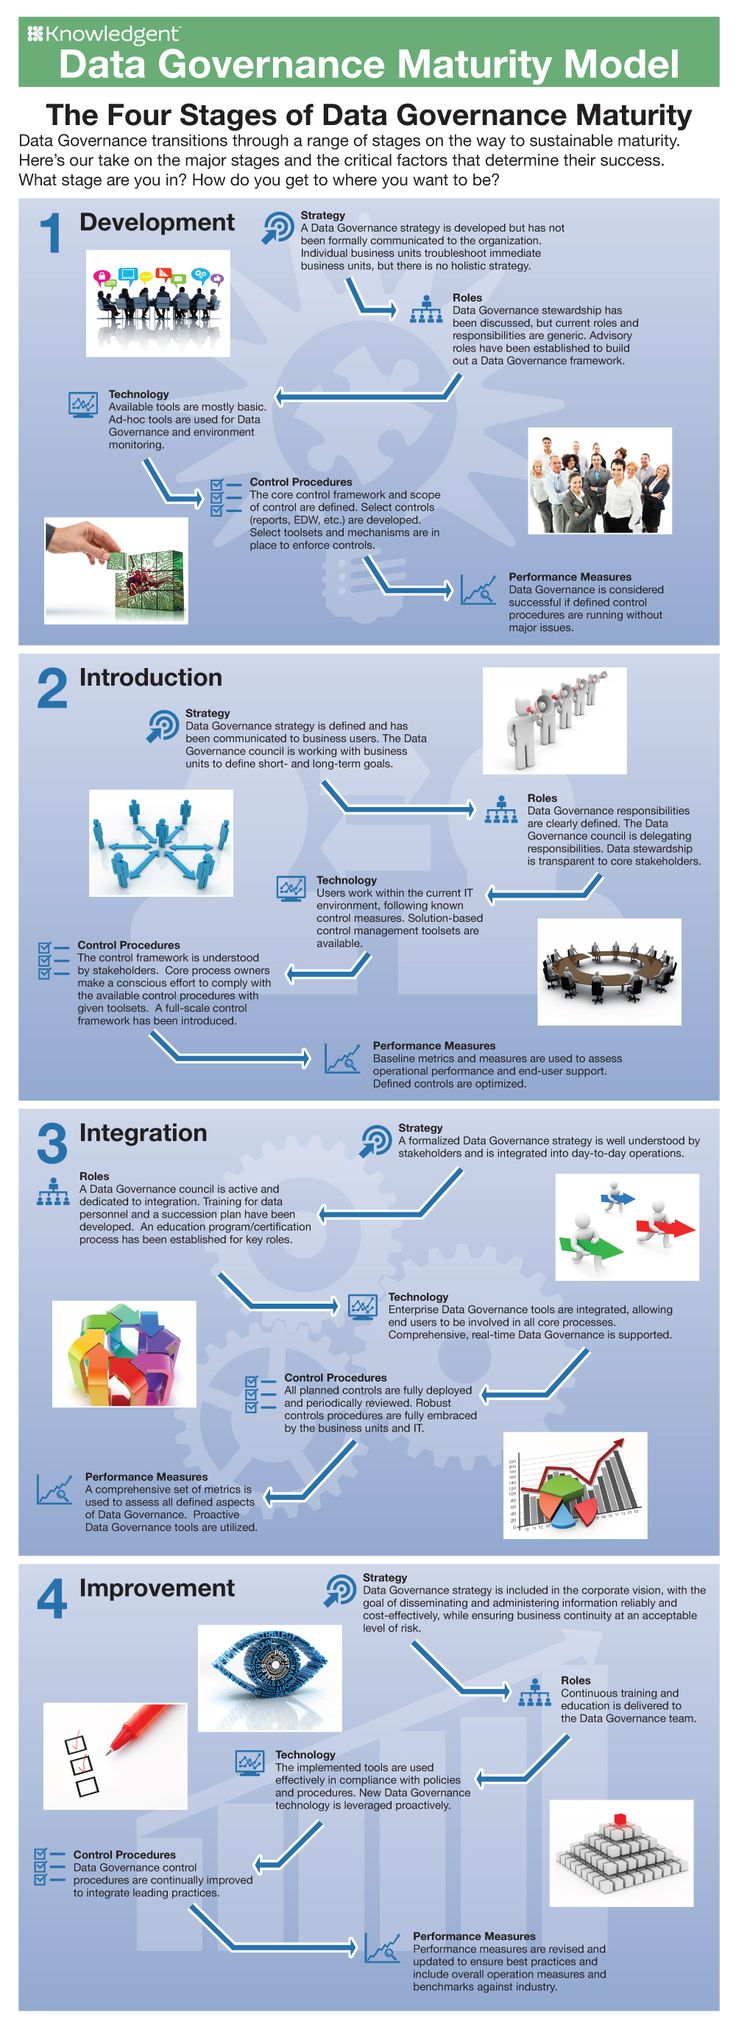 Knowledgent Infographic Data Governance Maturity Model